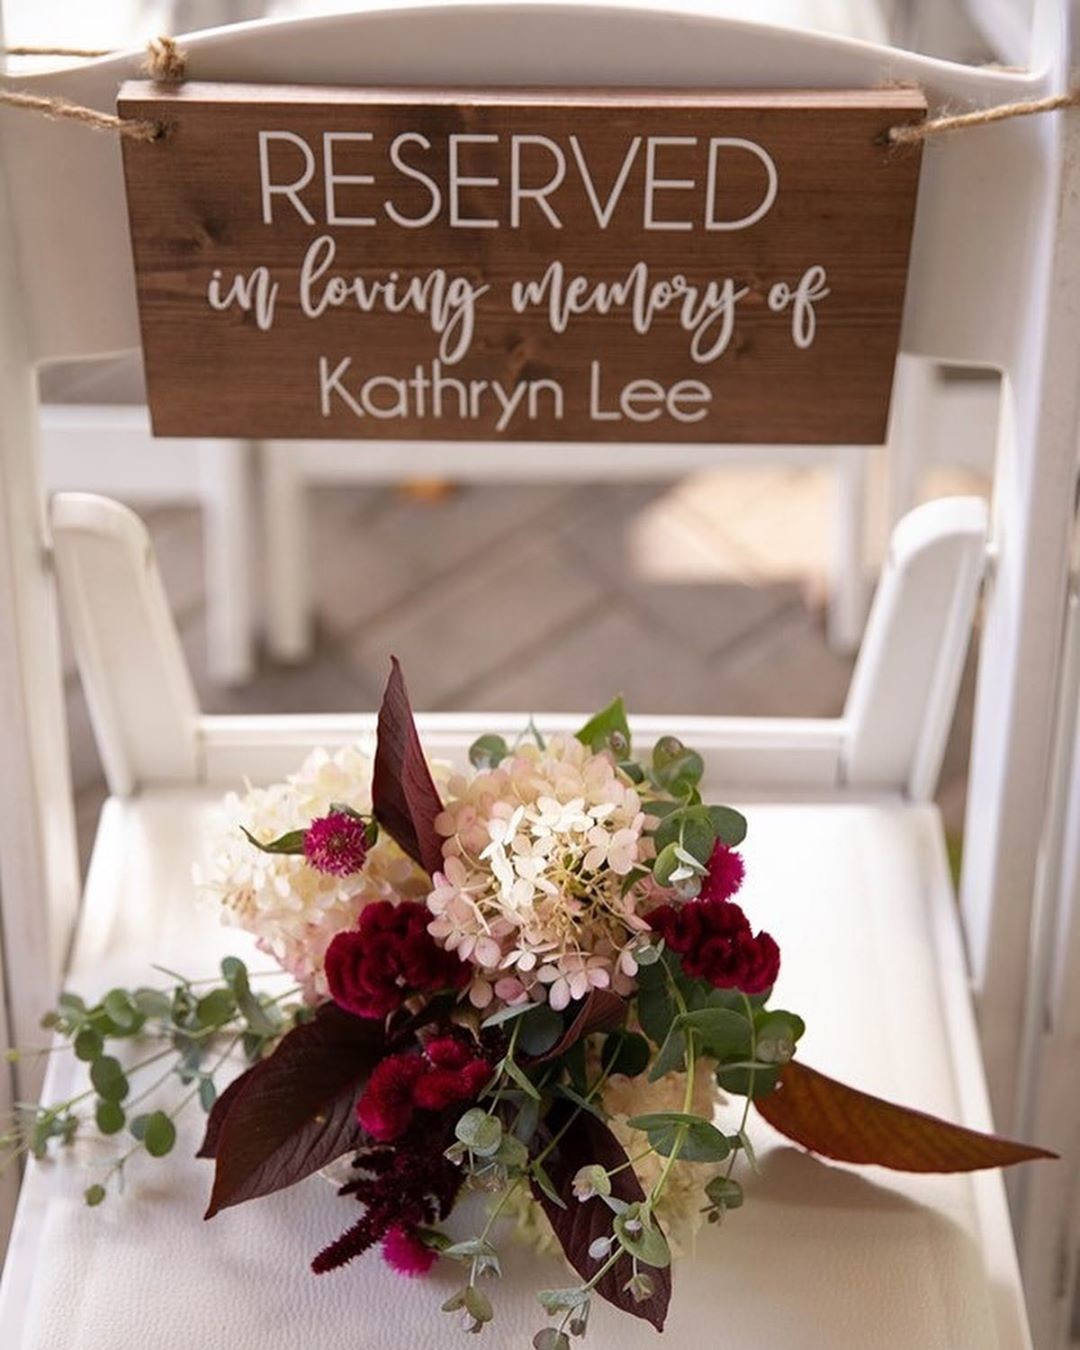 How sweet is this memorial for the ceremony? Our bride and groom wanted to have their mothers (represented by each of their favorite